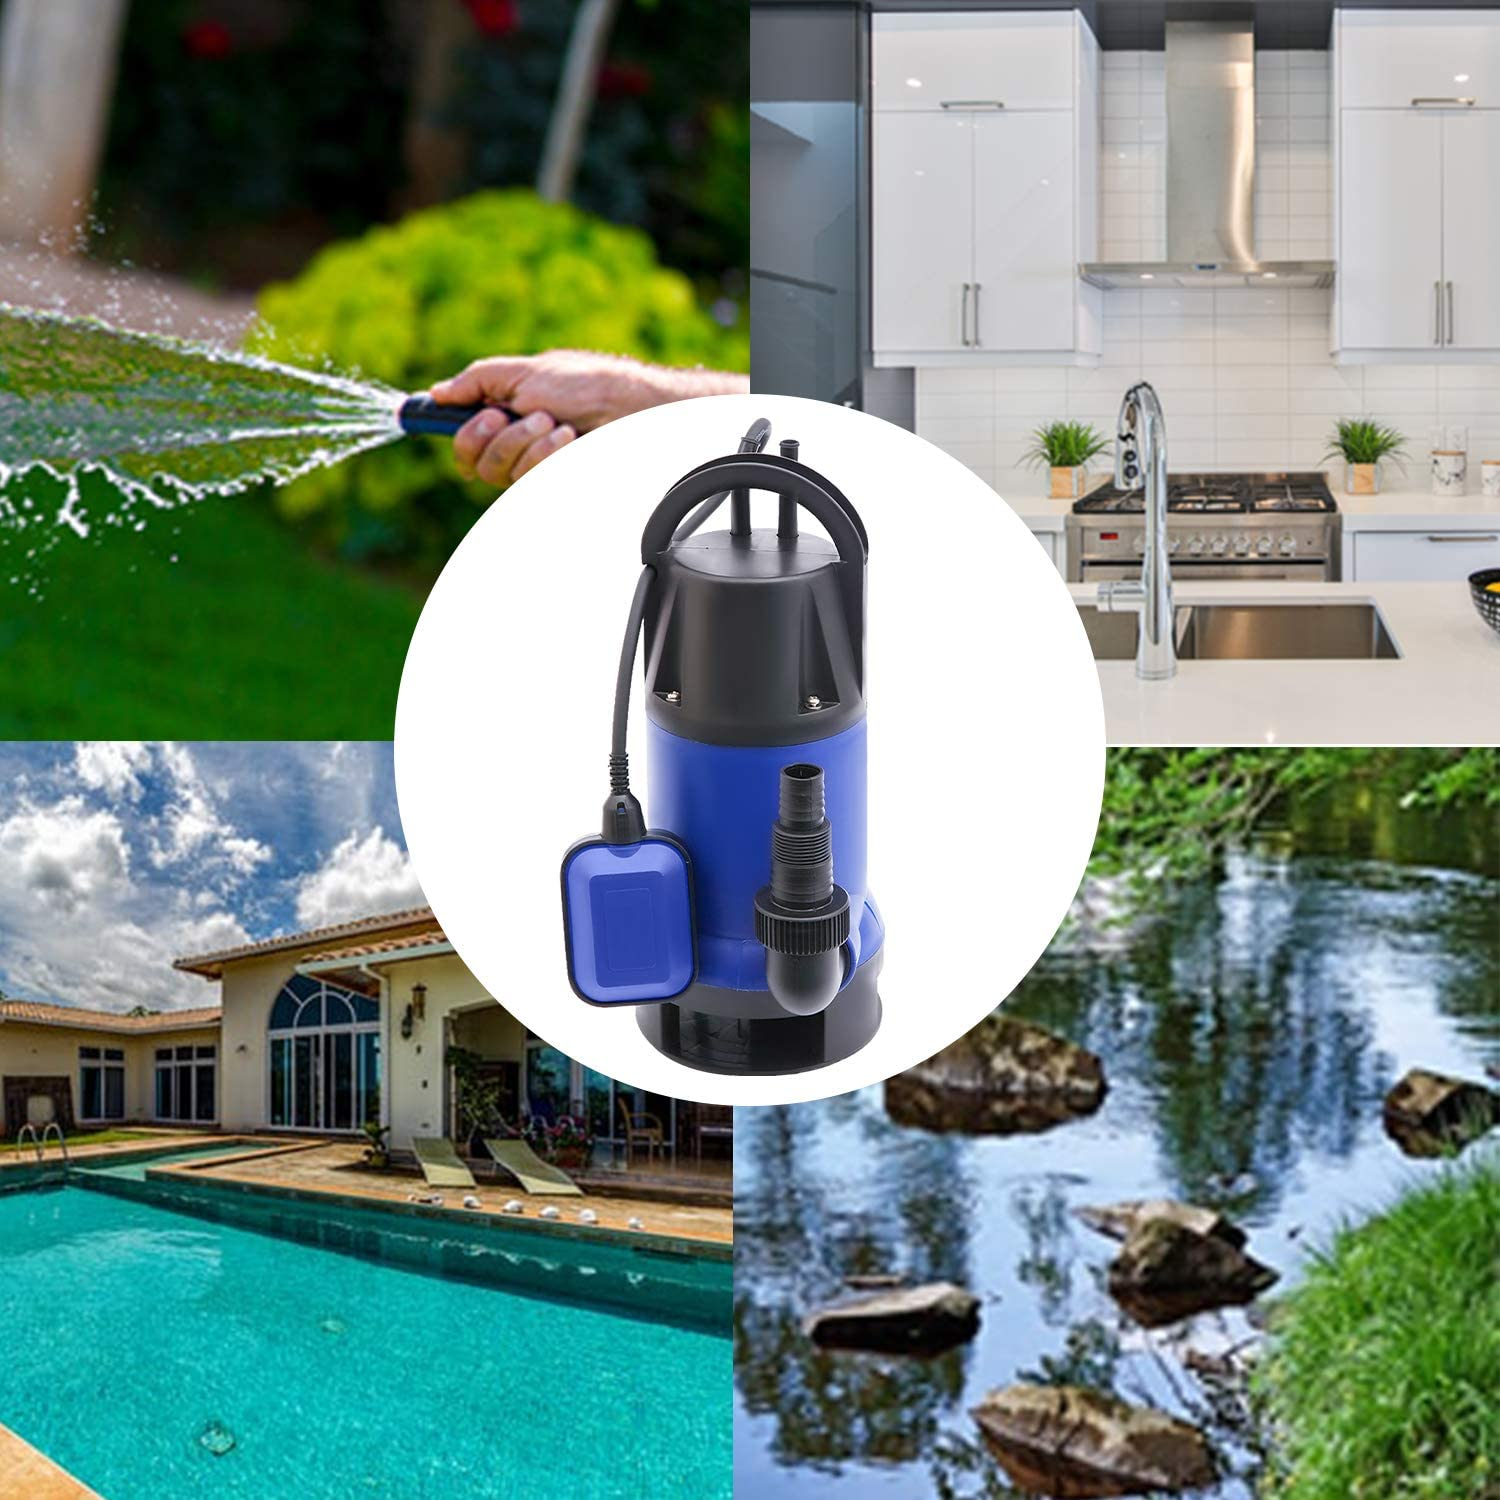 MEDAS 1HP Sump Pumps Portable Submersible Water Pump Electric Transfer Water Pump with 13700 L//H Max Flow for Pool Pond and Basement Draining in Clean//Dirty Water